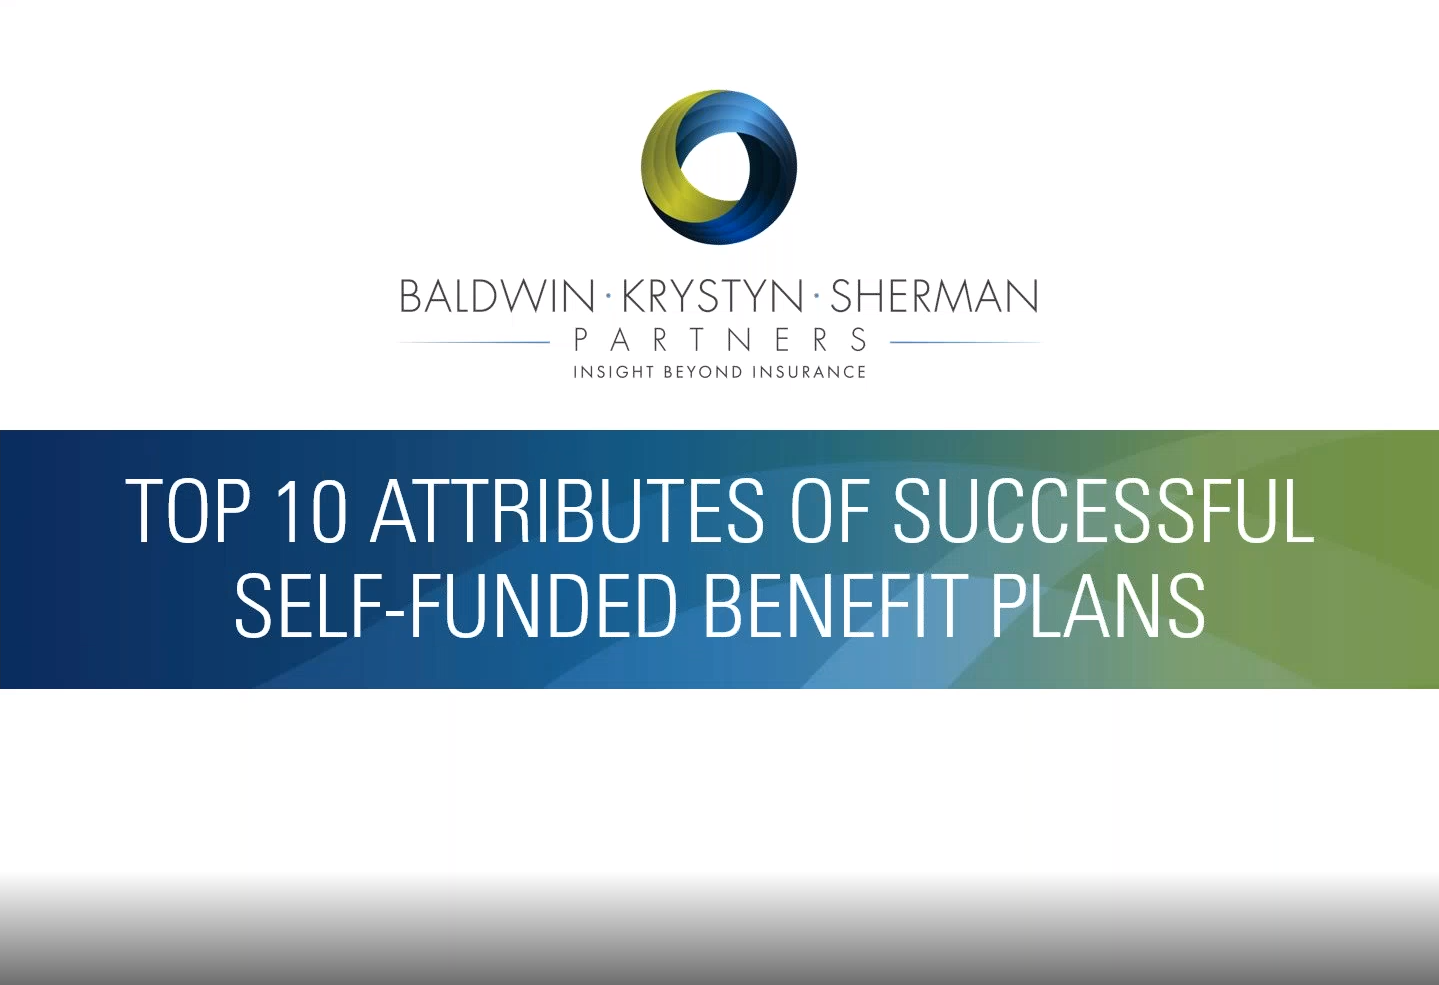 The Top 10 Attributes of a Successful Self-funded Benefits Plan (1)